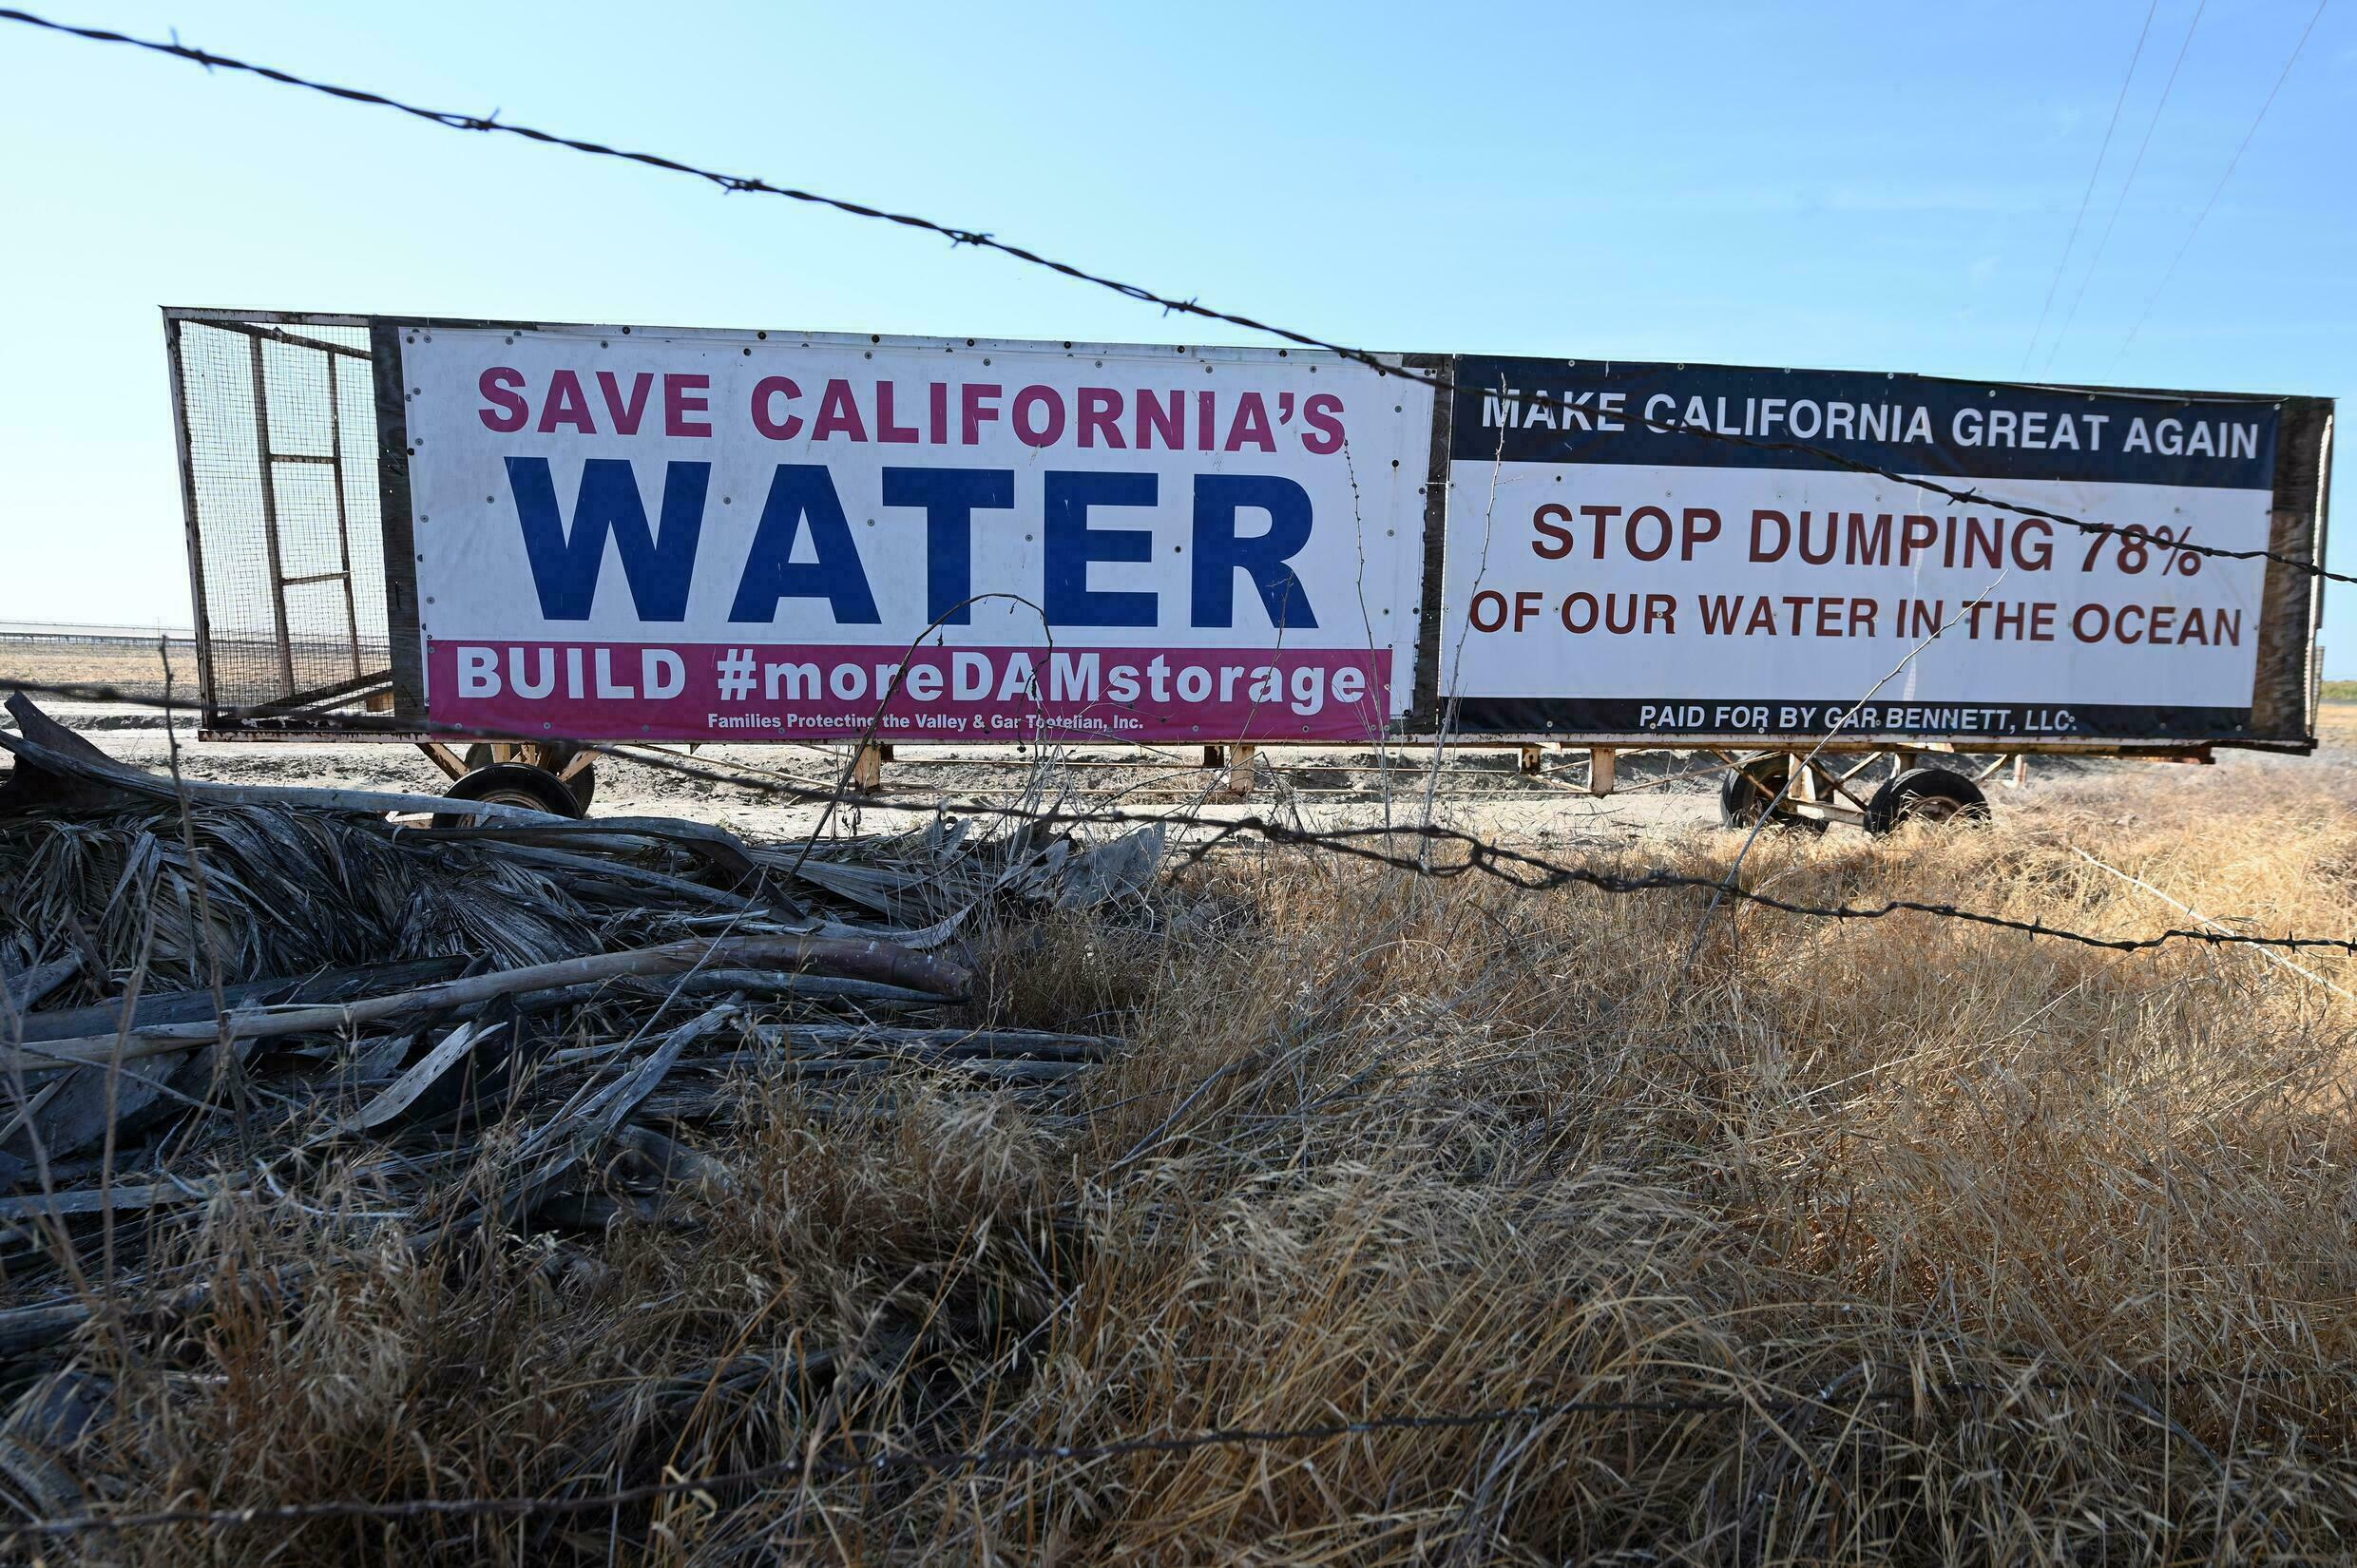 Billboards like these have popped up in farming areas of central California amid political battles over precious water supplies